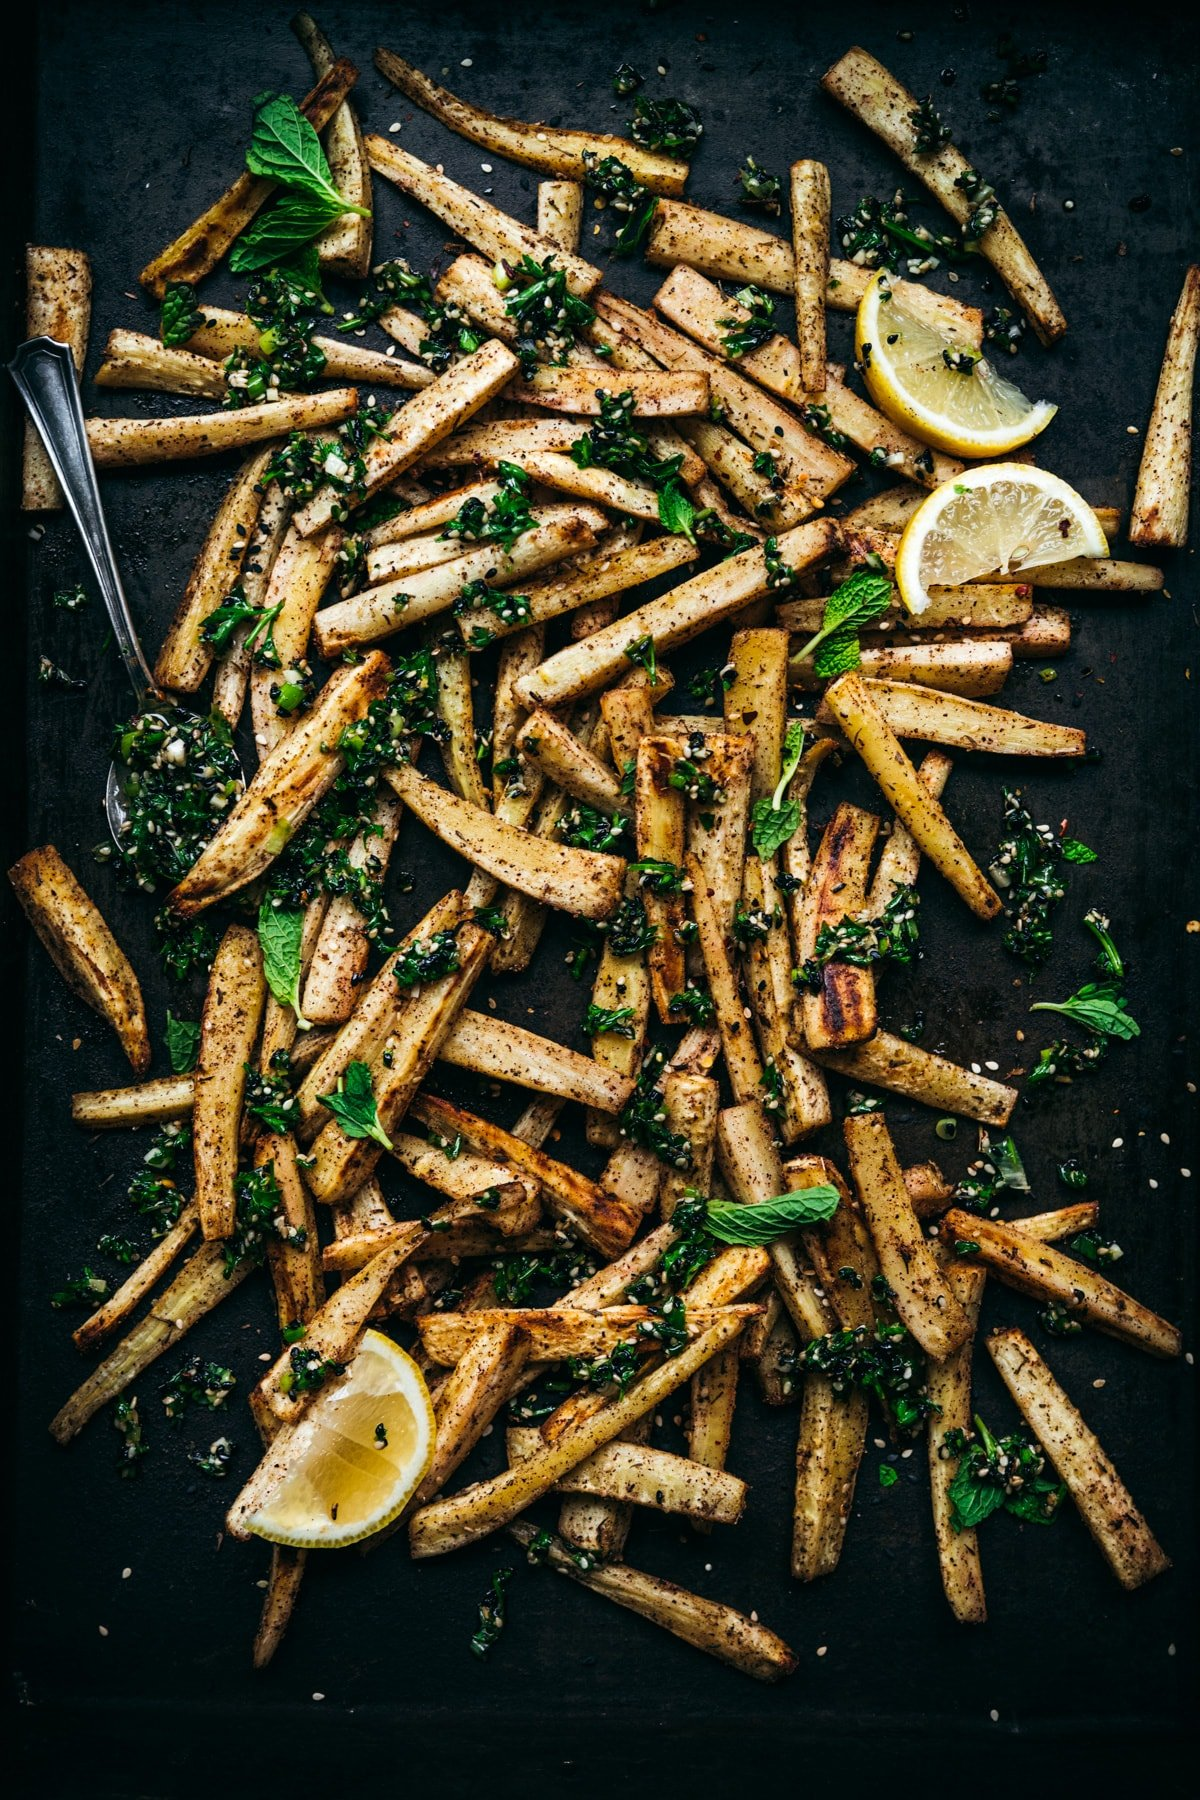 overhead view of roasted parsnips on a sheet pan with za'atar gremolata on top.